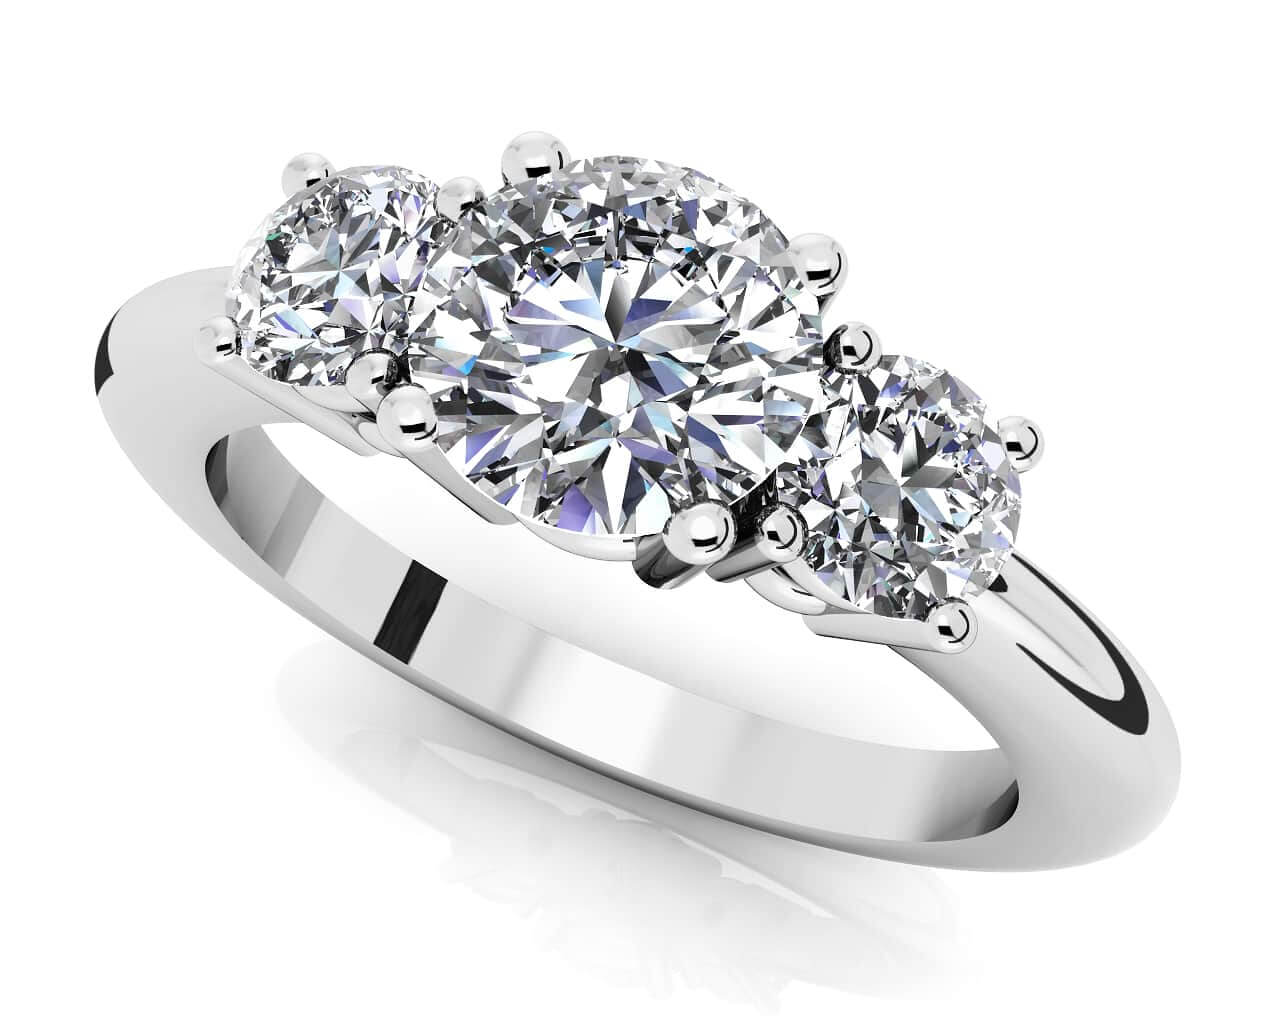 solitaire designs with design princess top diamond popular infinity best ring jewelocean engagement halo